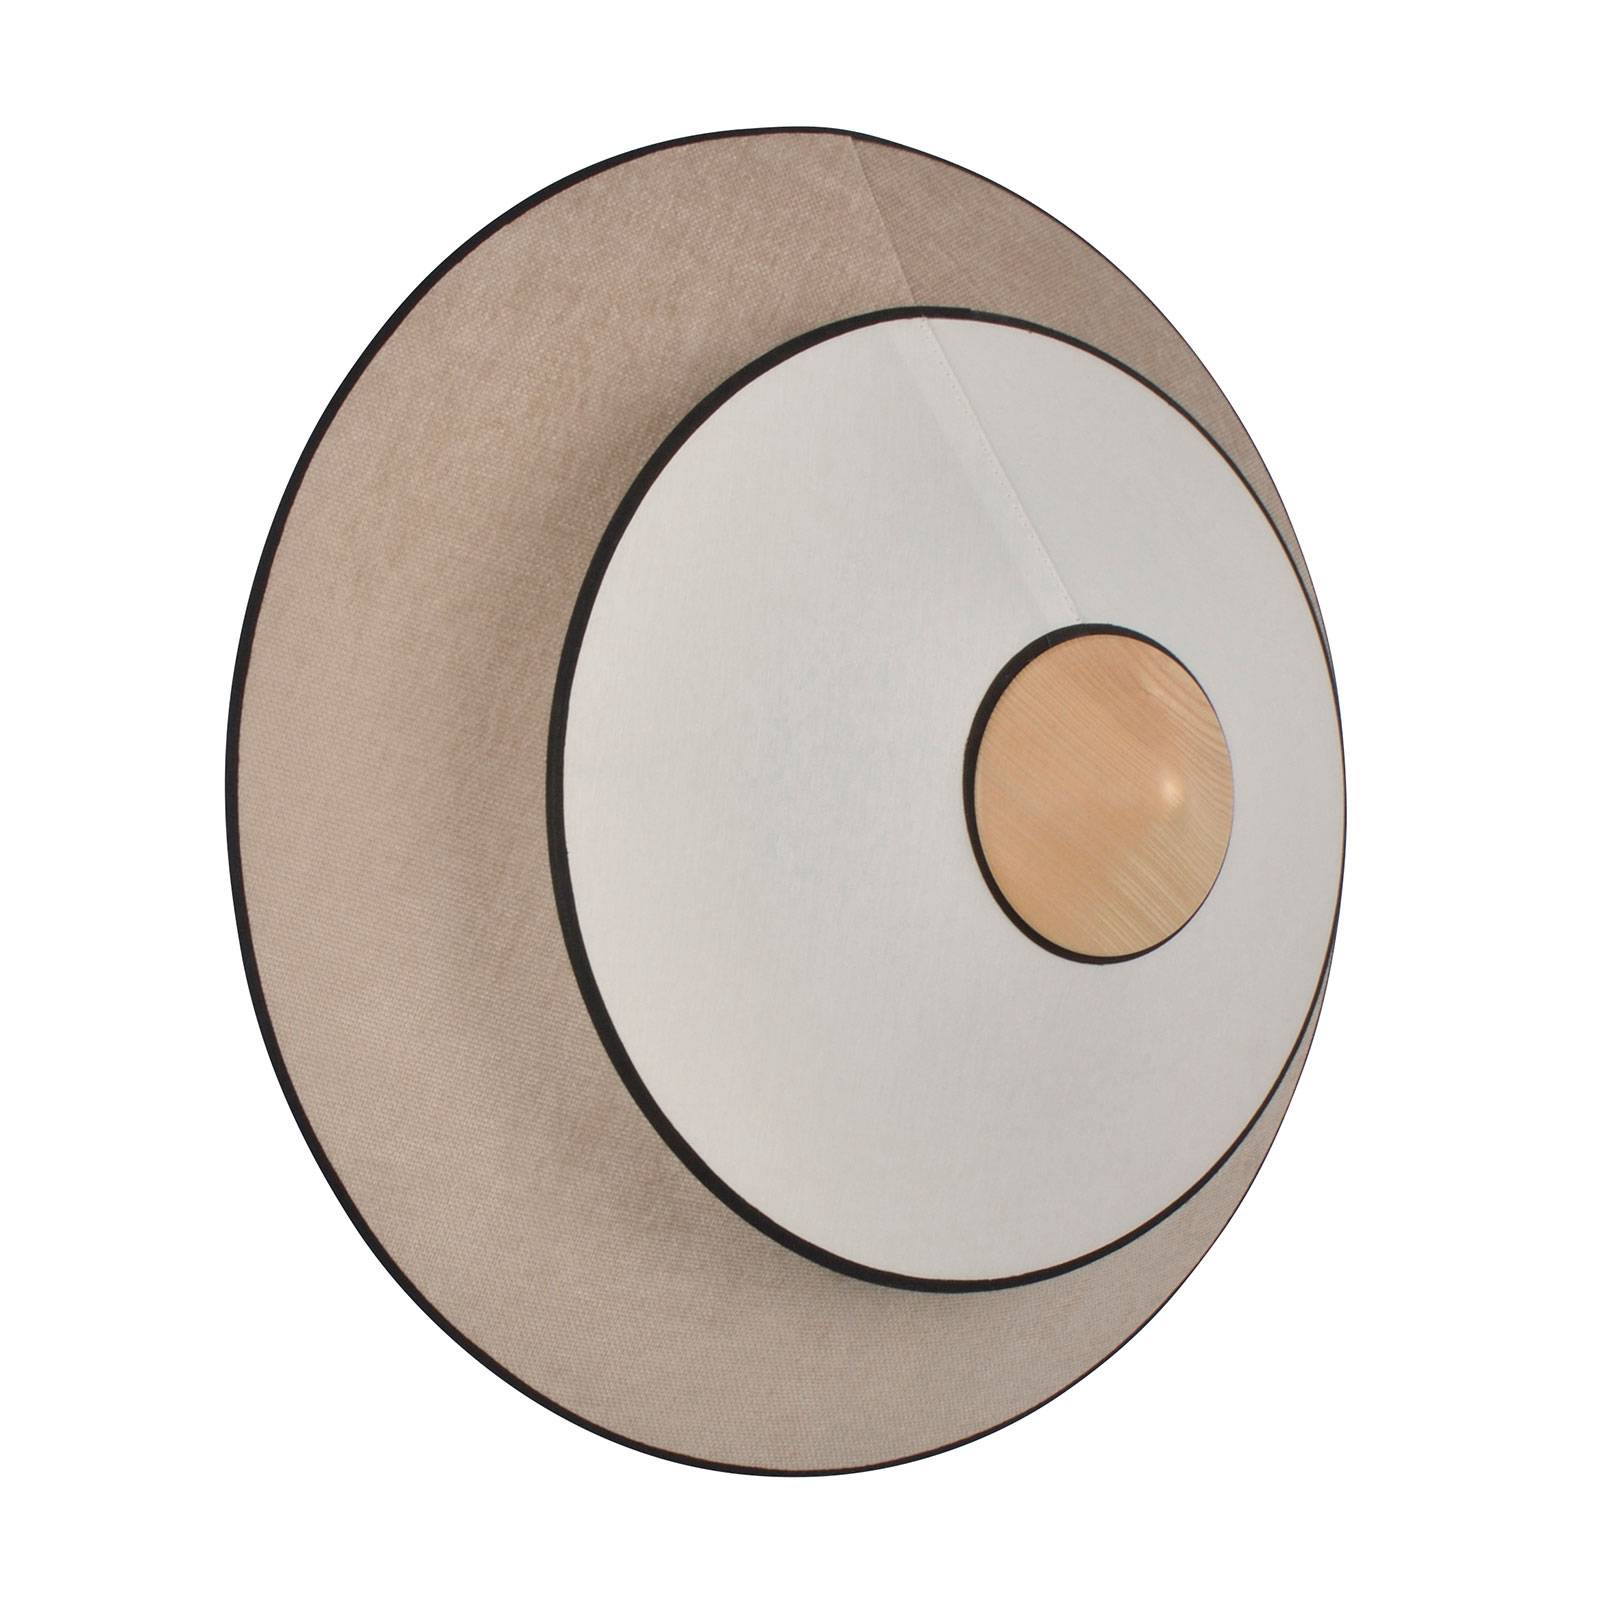 Forestier Cymbal S LED-Wandleuchte, natur